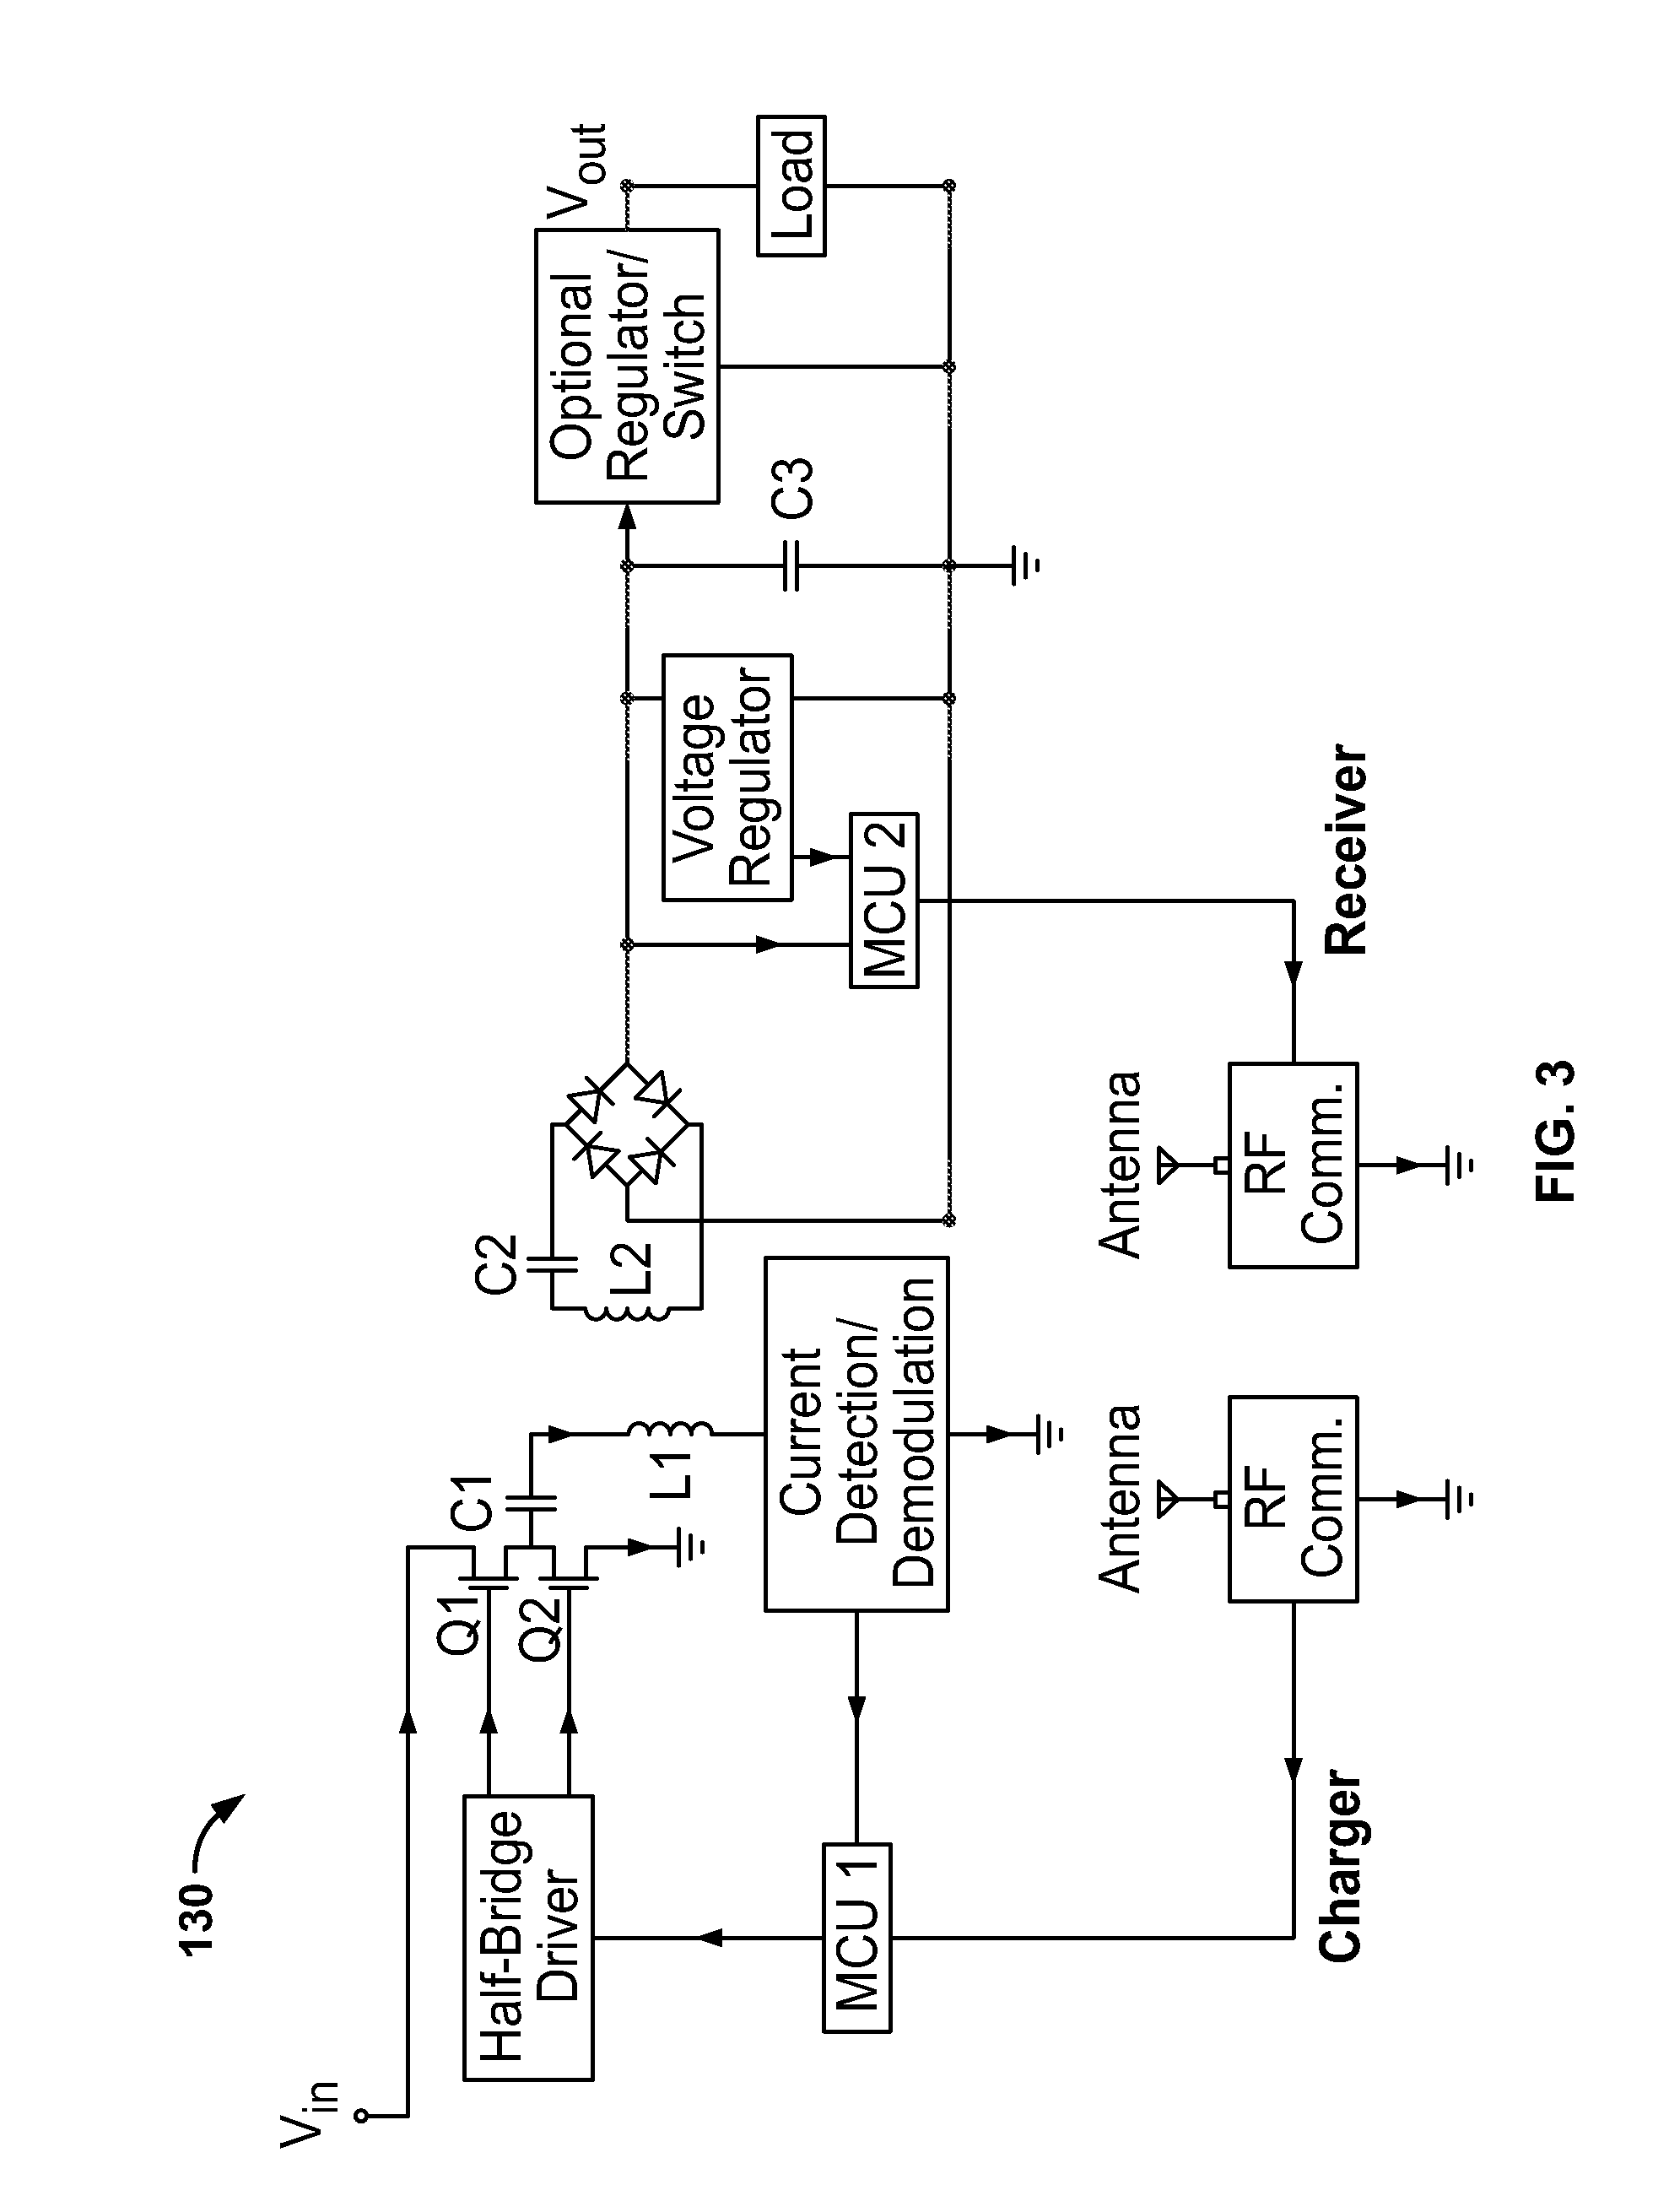 Patente Us20120235636 Systems And Methods For Providing Franklin Oscillator Circuit Tesla Shuttle How To Patent Drawing